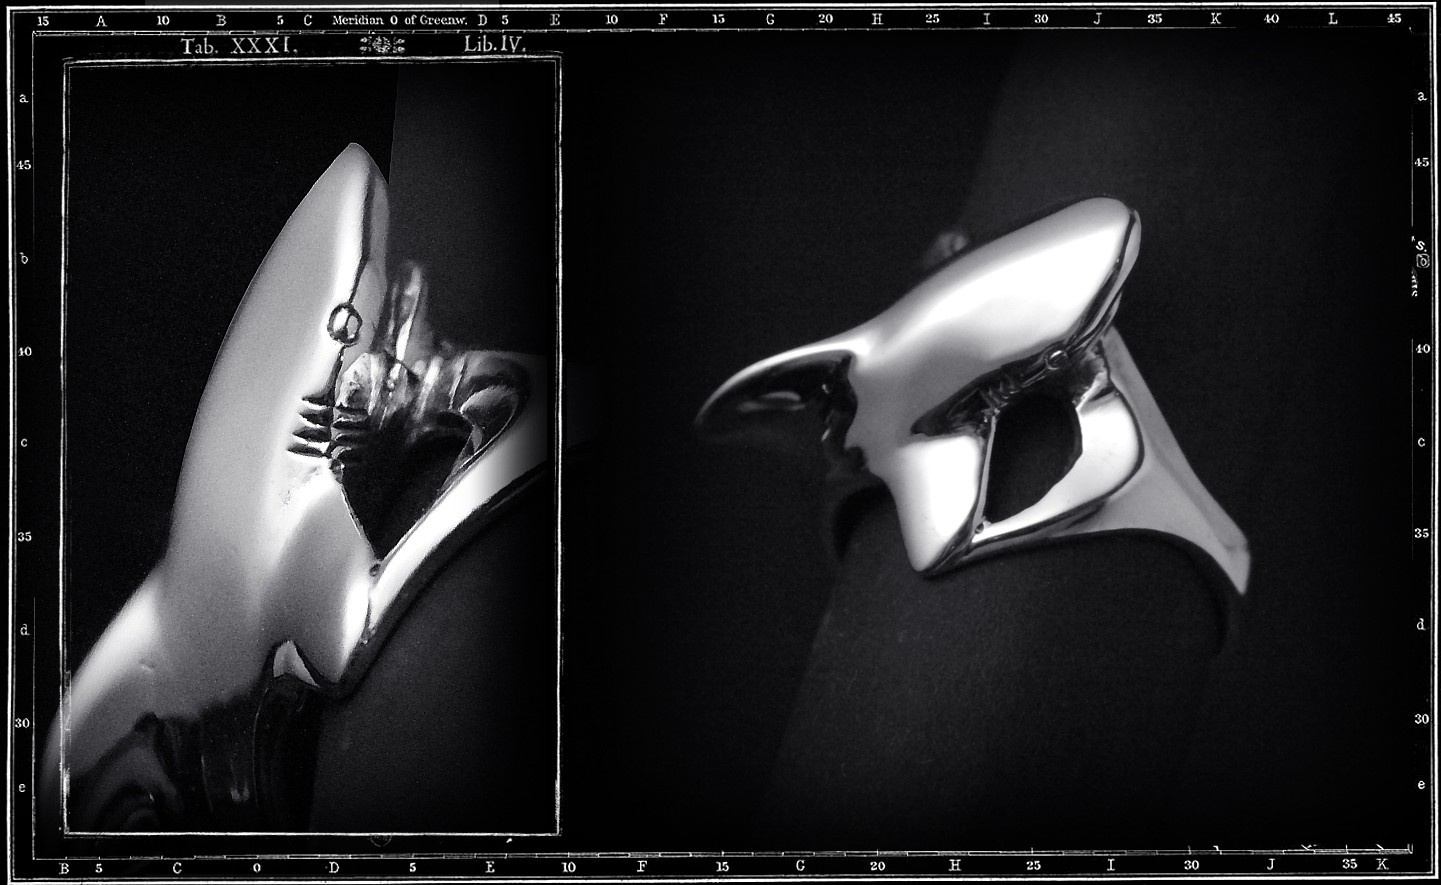 SHARK (WHOLEBODY) RING